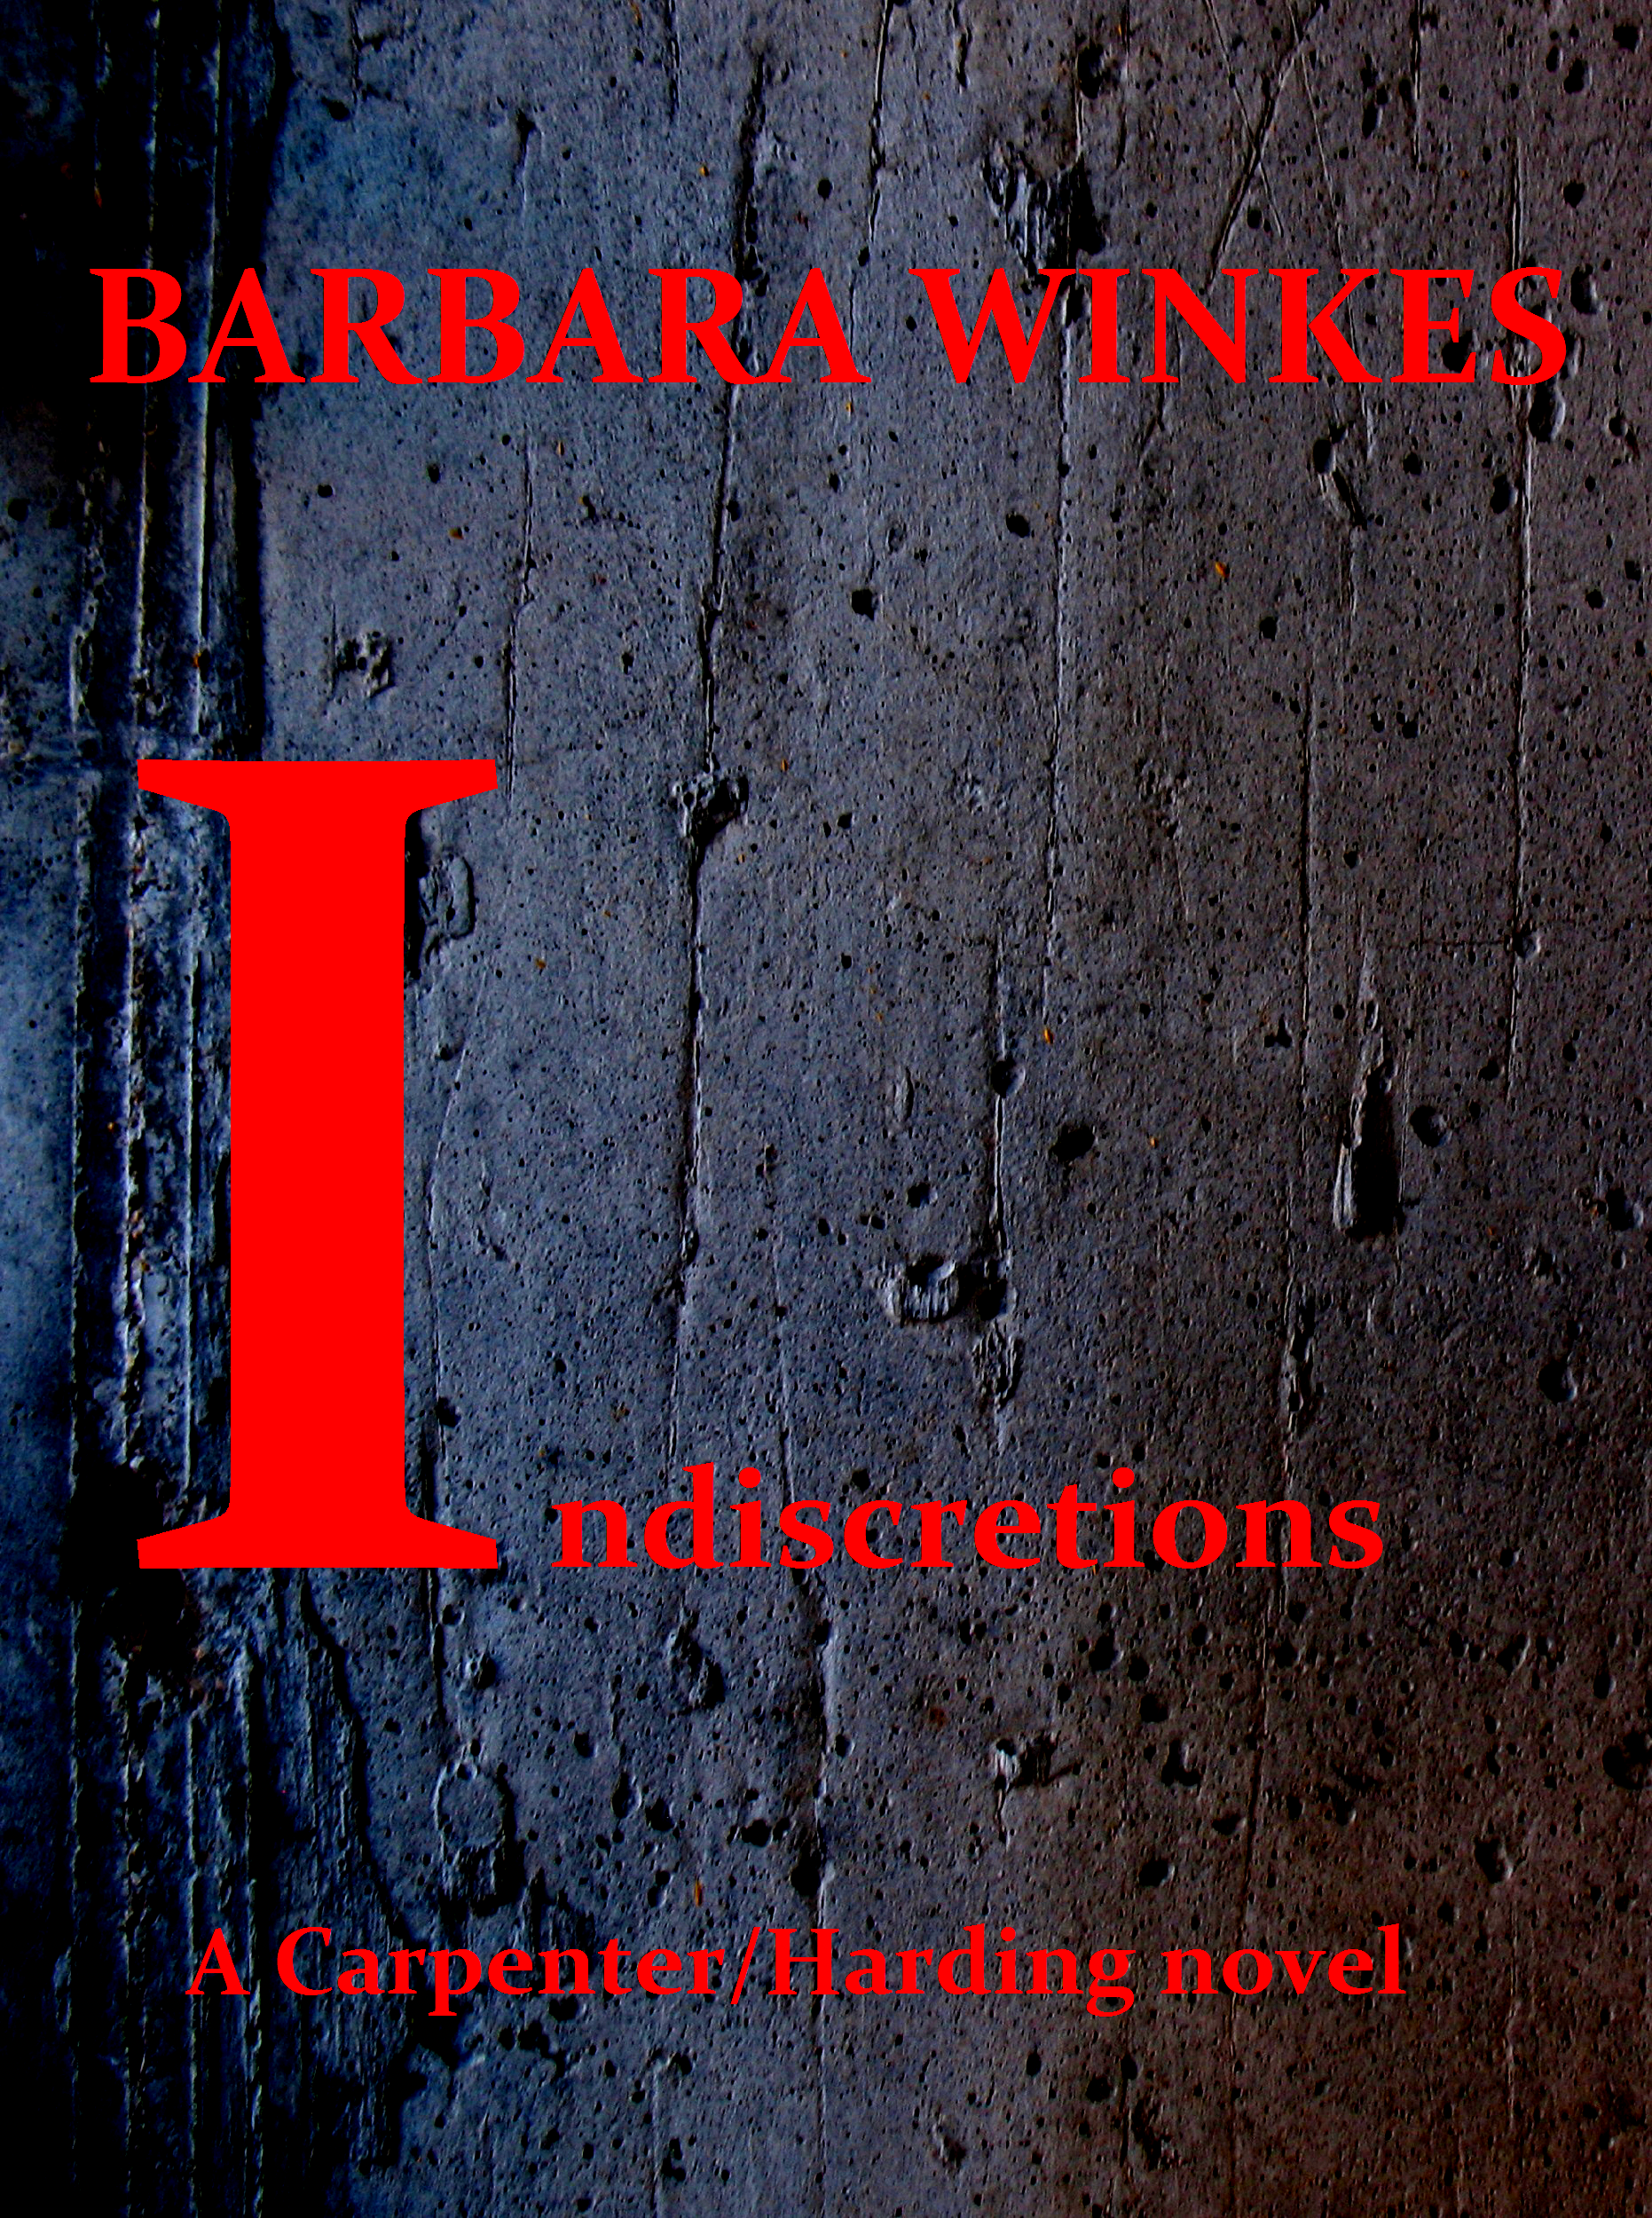 Introducing Ann McCoy by Barbara Winkes (plus TWO FREE BOOKS!)